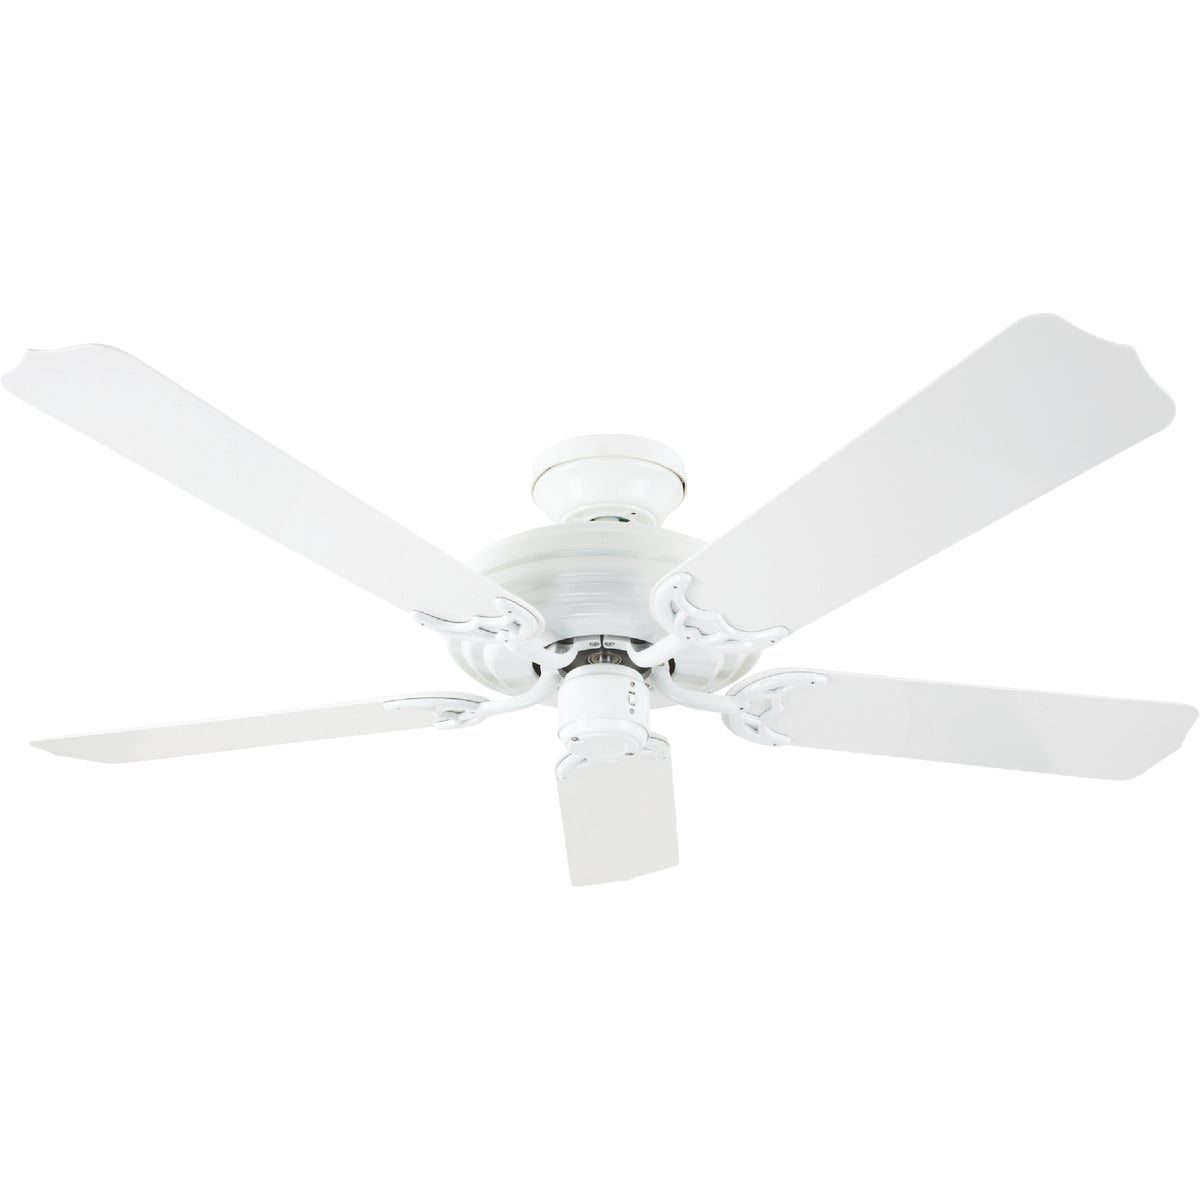 "52"" WH OUTDR CEILING FAN - 23566 by Hunter Fan Co"